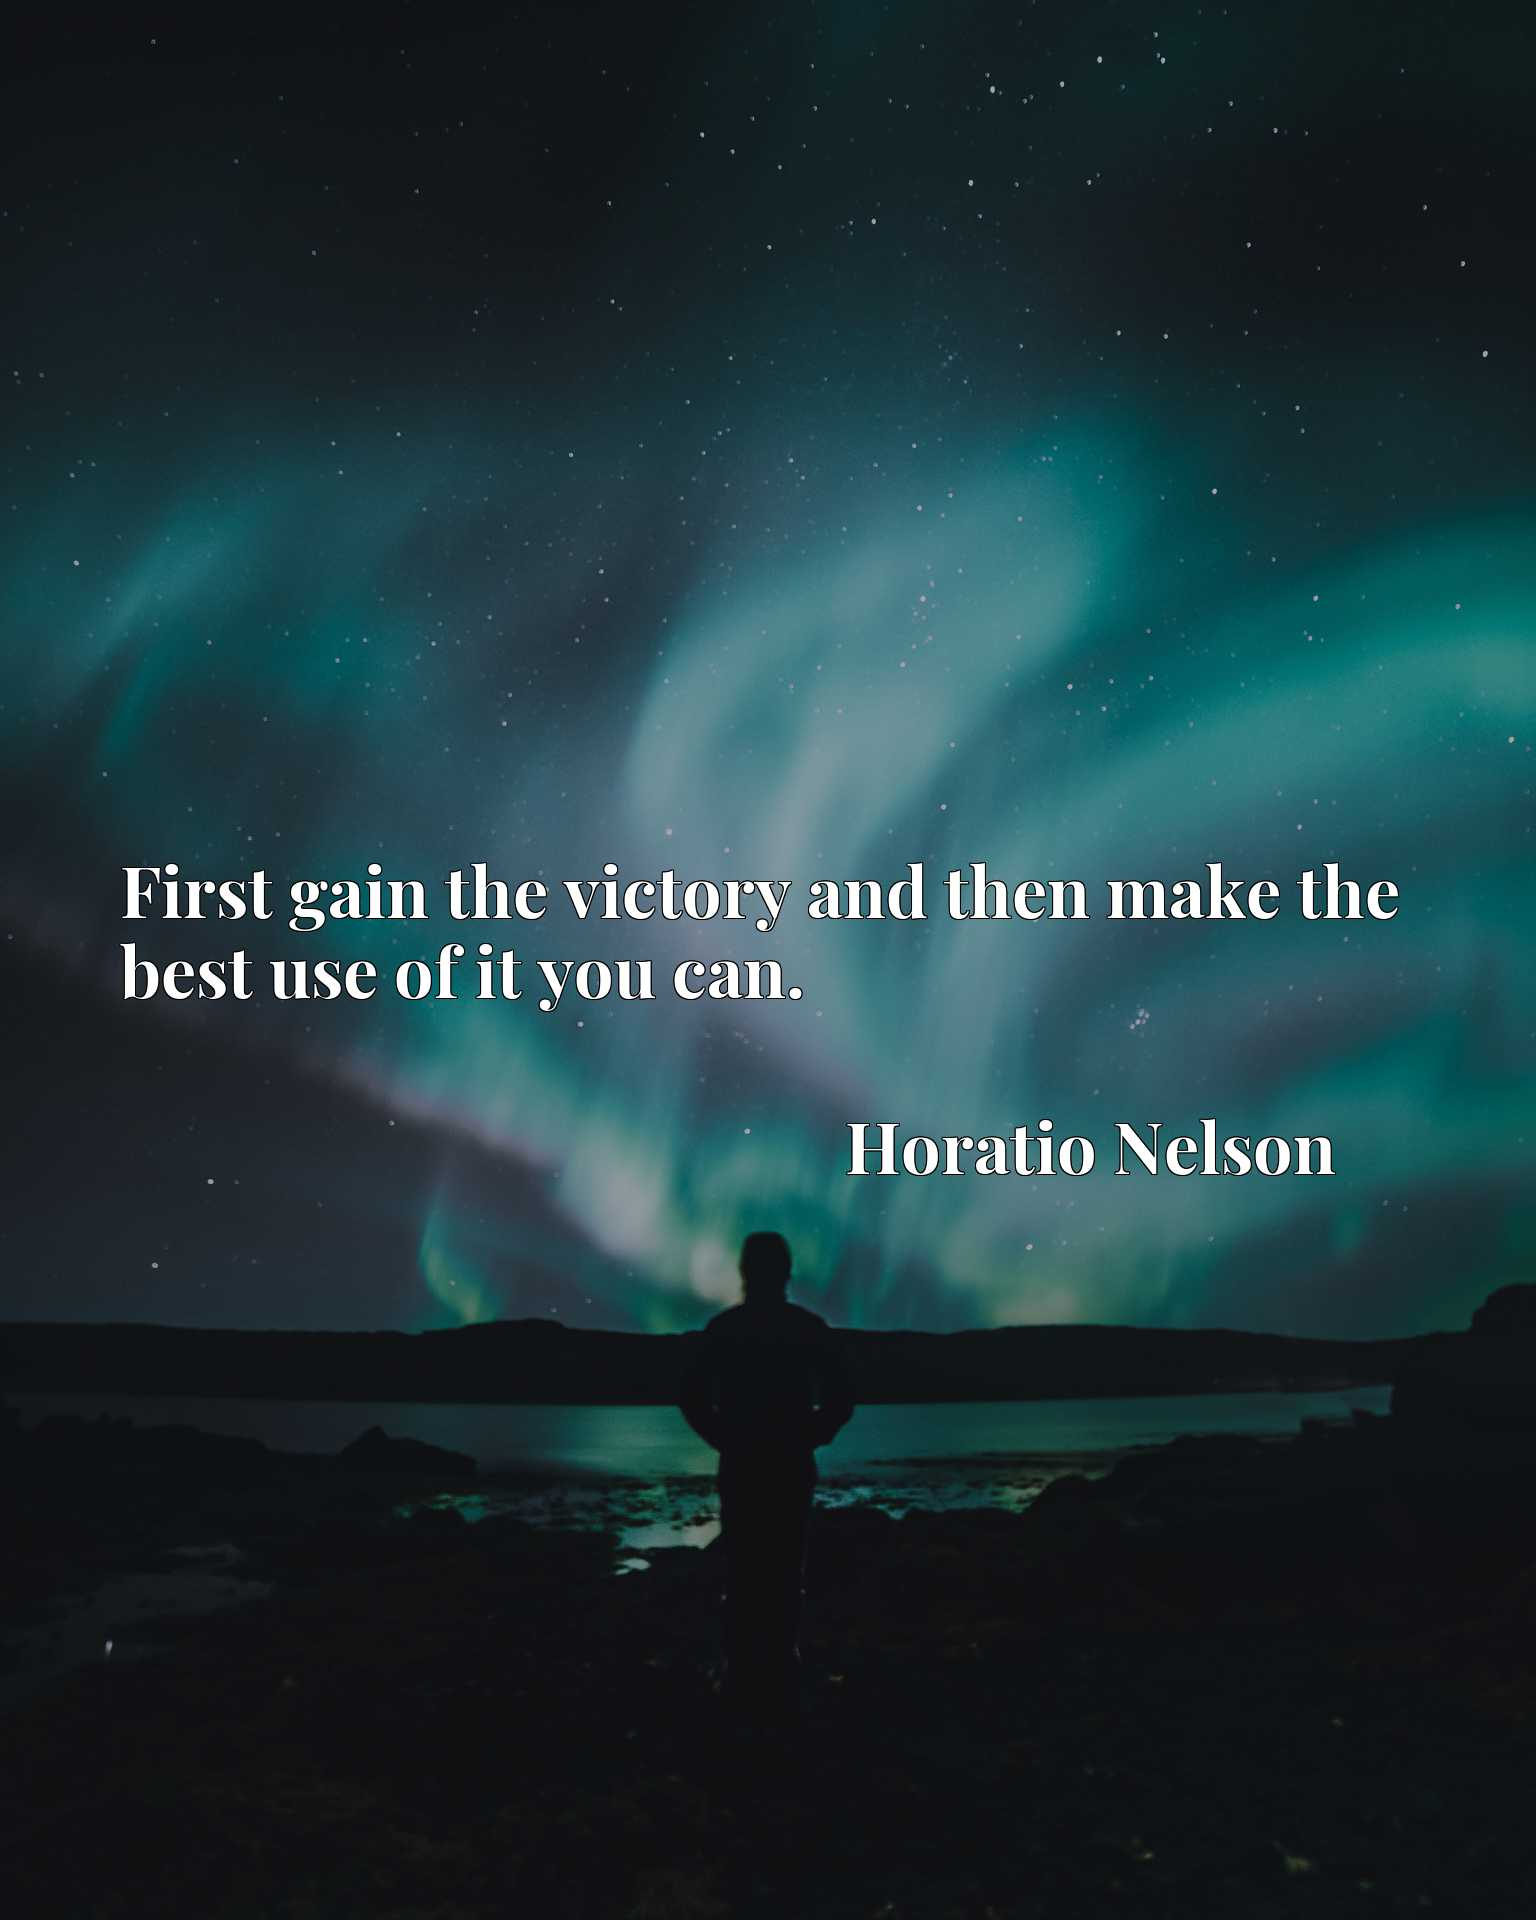 First gain the victory and then make the best use of it you can.